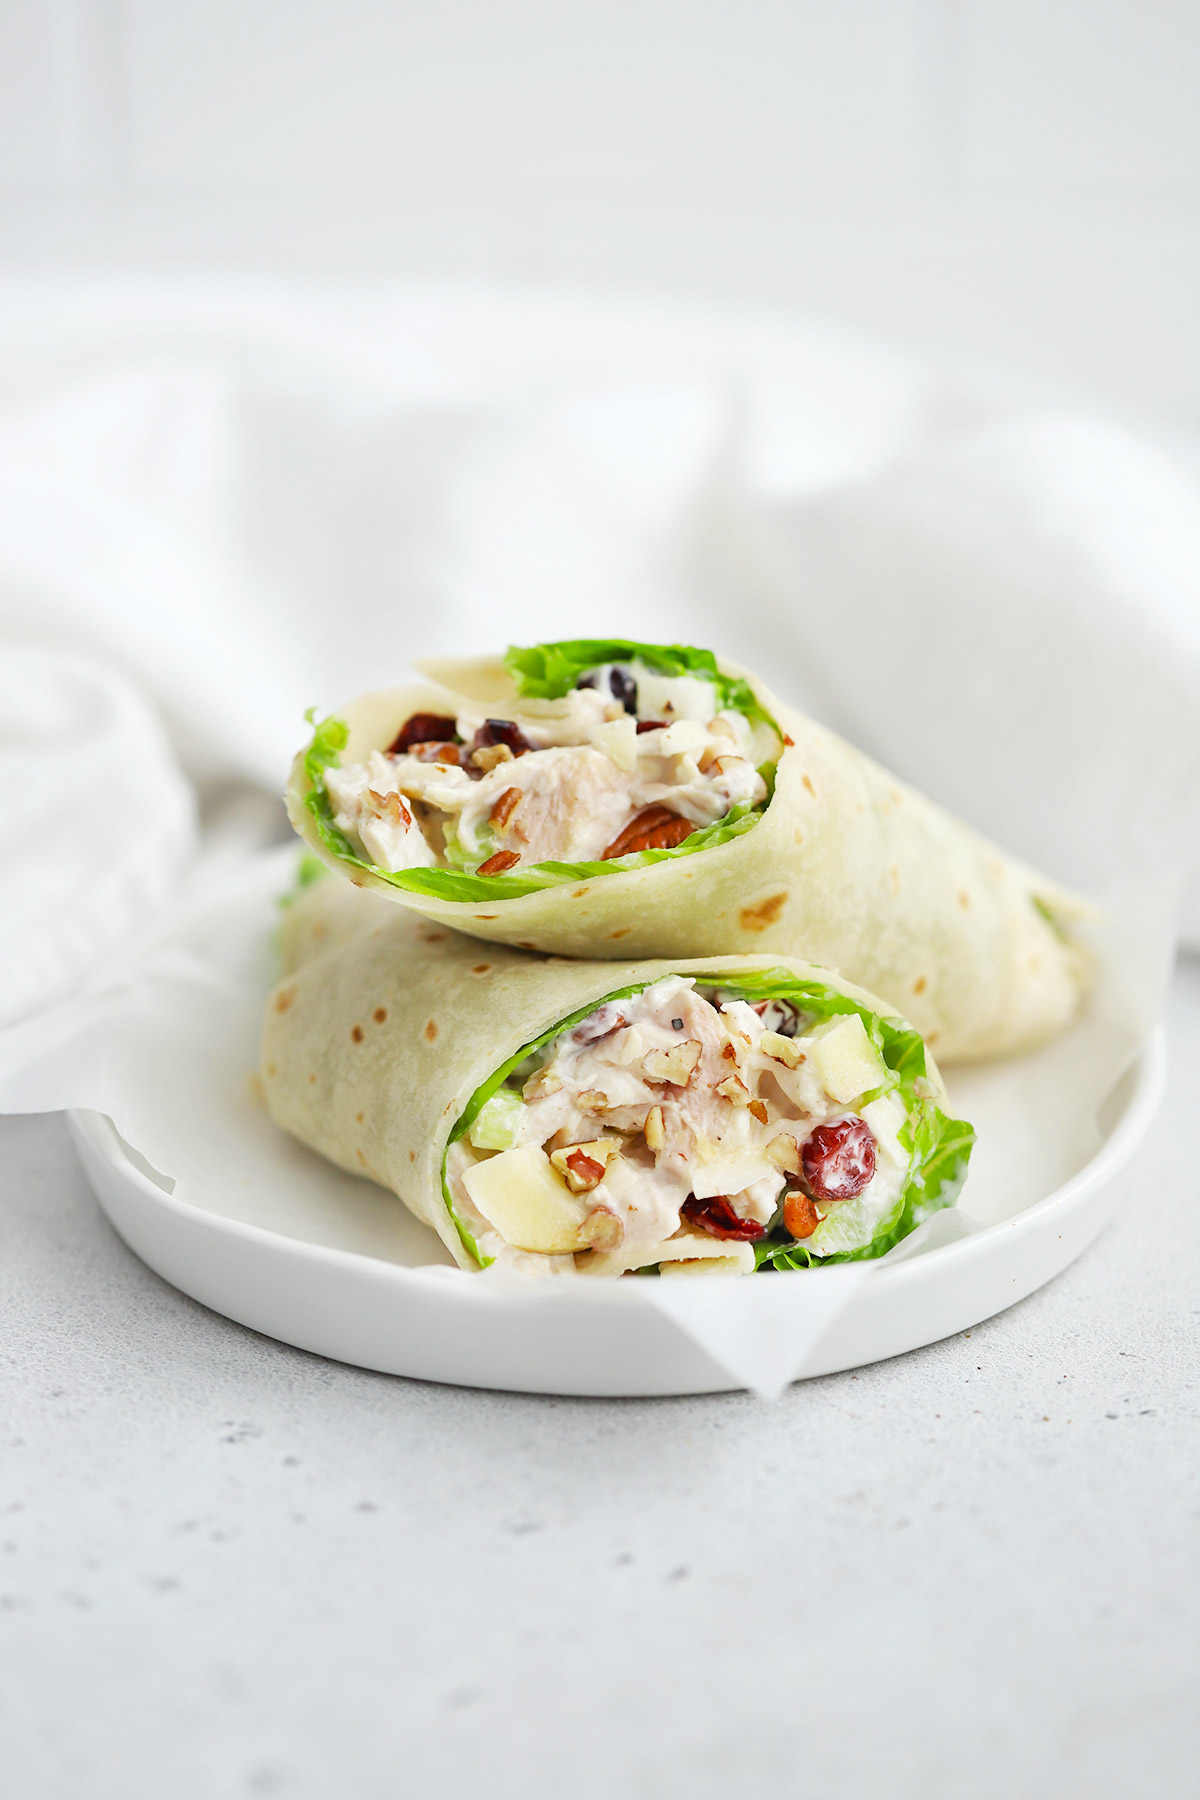 Front view of a halved apple cranberry chicken salad wrap made with a gluten-free tortilla